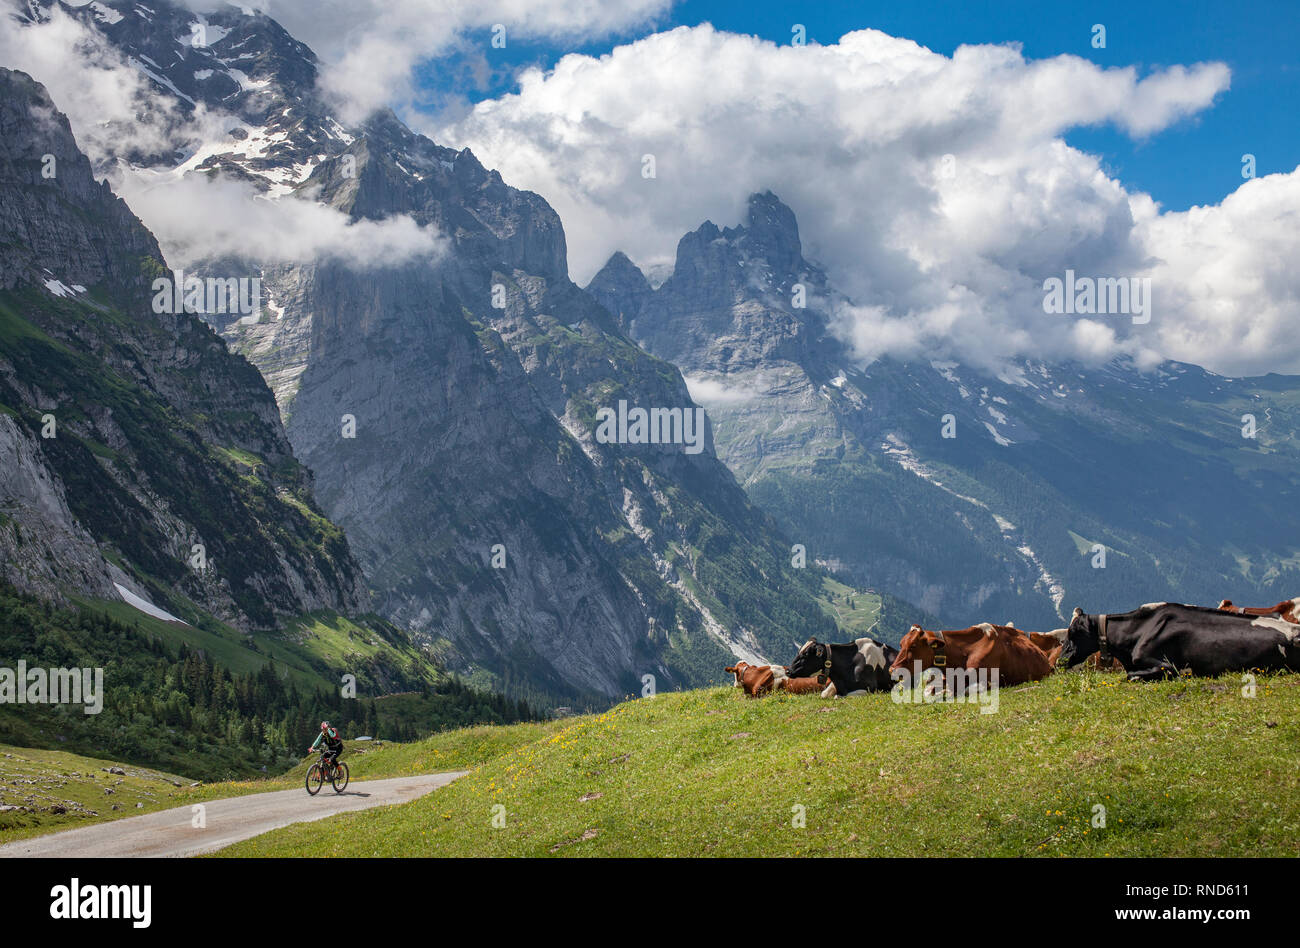 cattle herd in the grasslands high above Grindelwald with Eiger North face in the background, Berner Oberland,Jungfrauregion, Switzerland - Stock Image